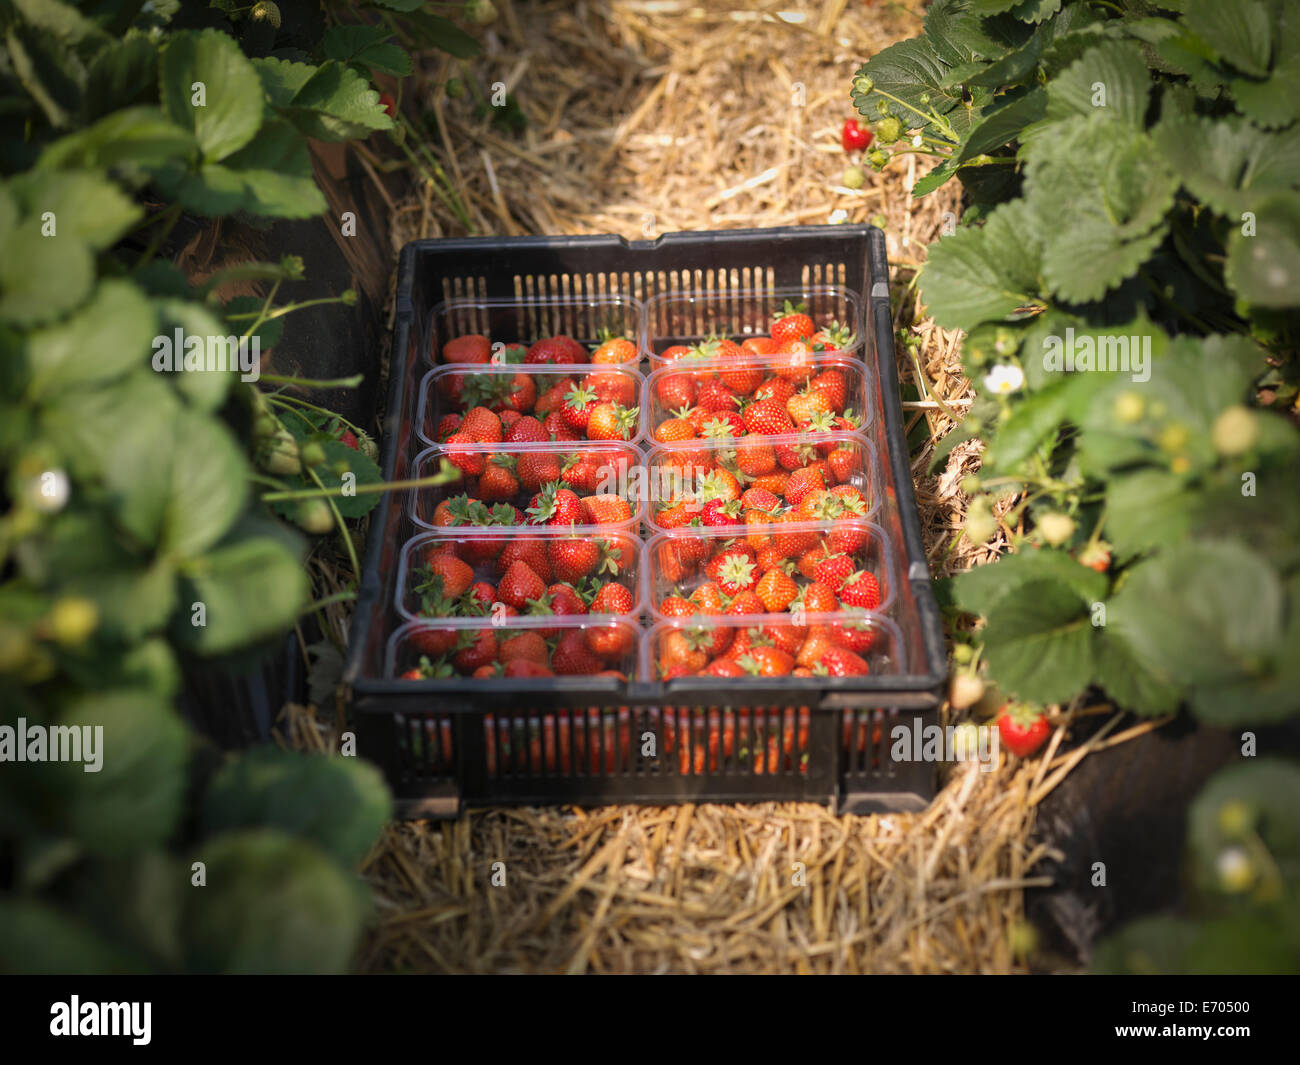 Tray of freshly picked strawberries in punnets on fruit farm - Stock Image